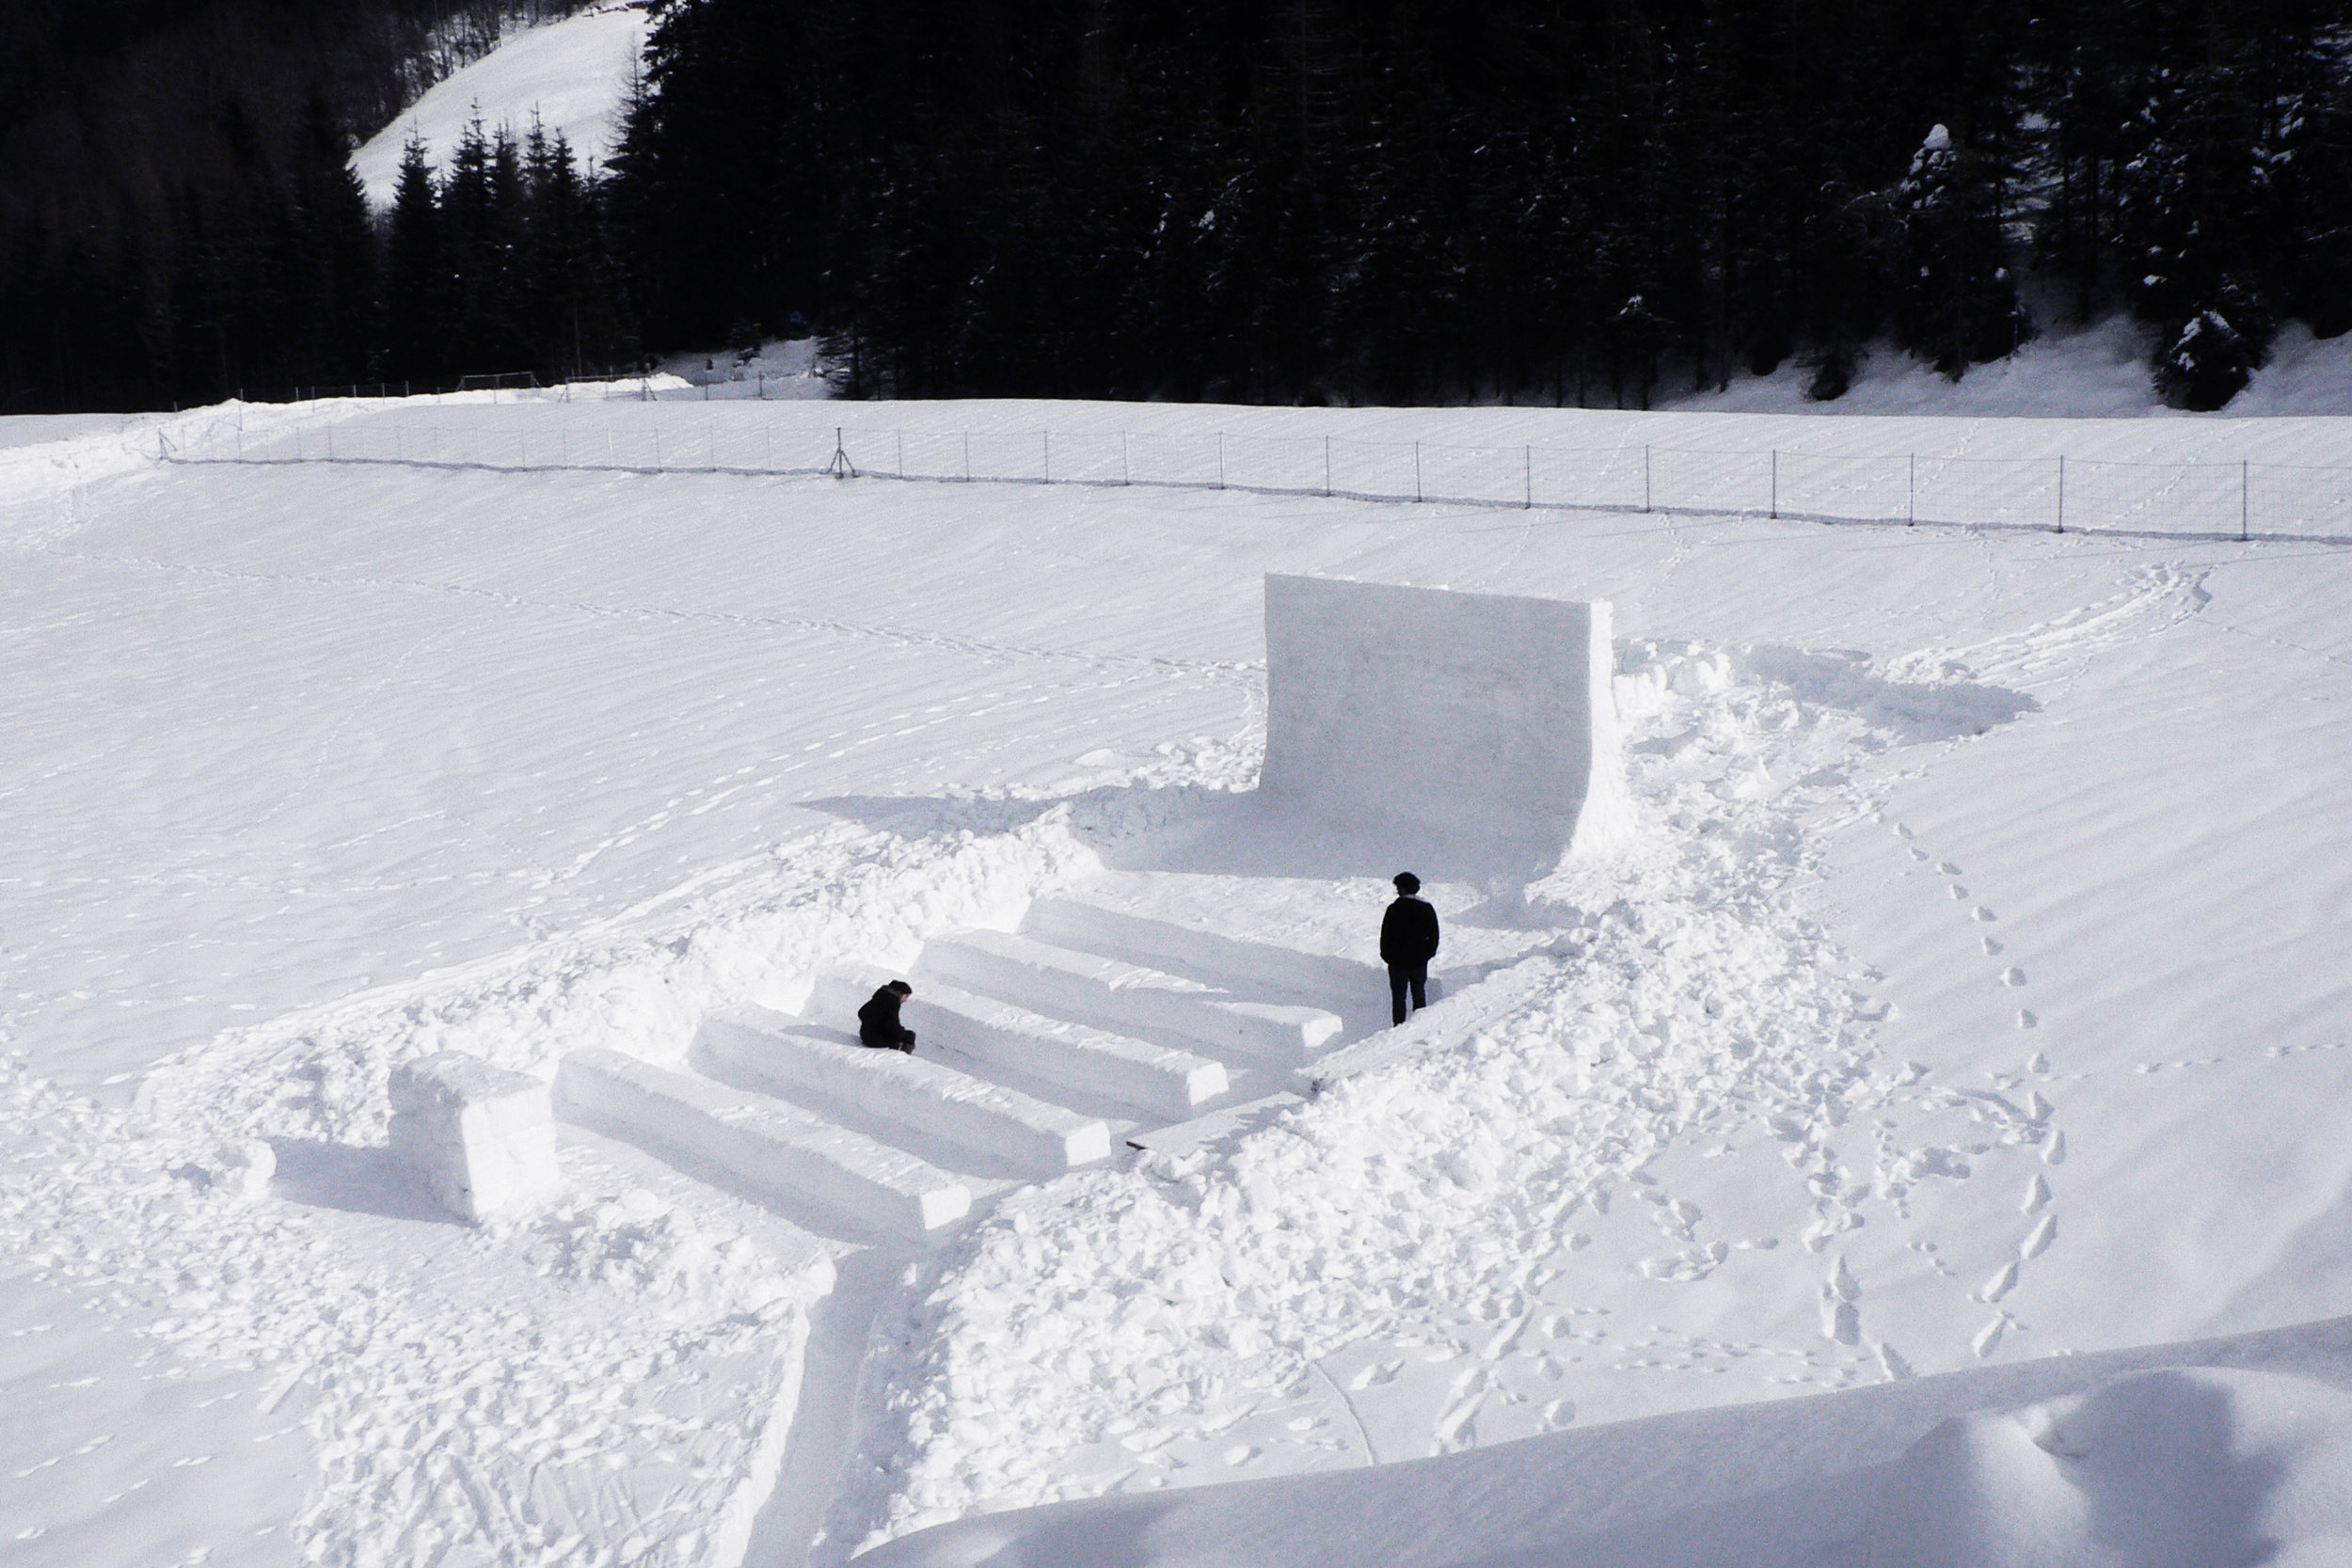 The inaugural  m20d  event was originally conceived as an excuse to play and experiment with snow. With the initial vision of projecting onto snow, a snow cinema was created. It quickly turned into a short film festival featuring a selection of works by a set of internationally acclaimed artists.